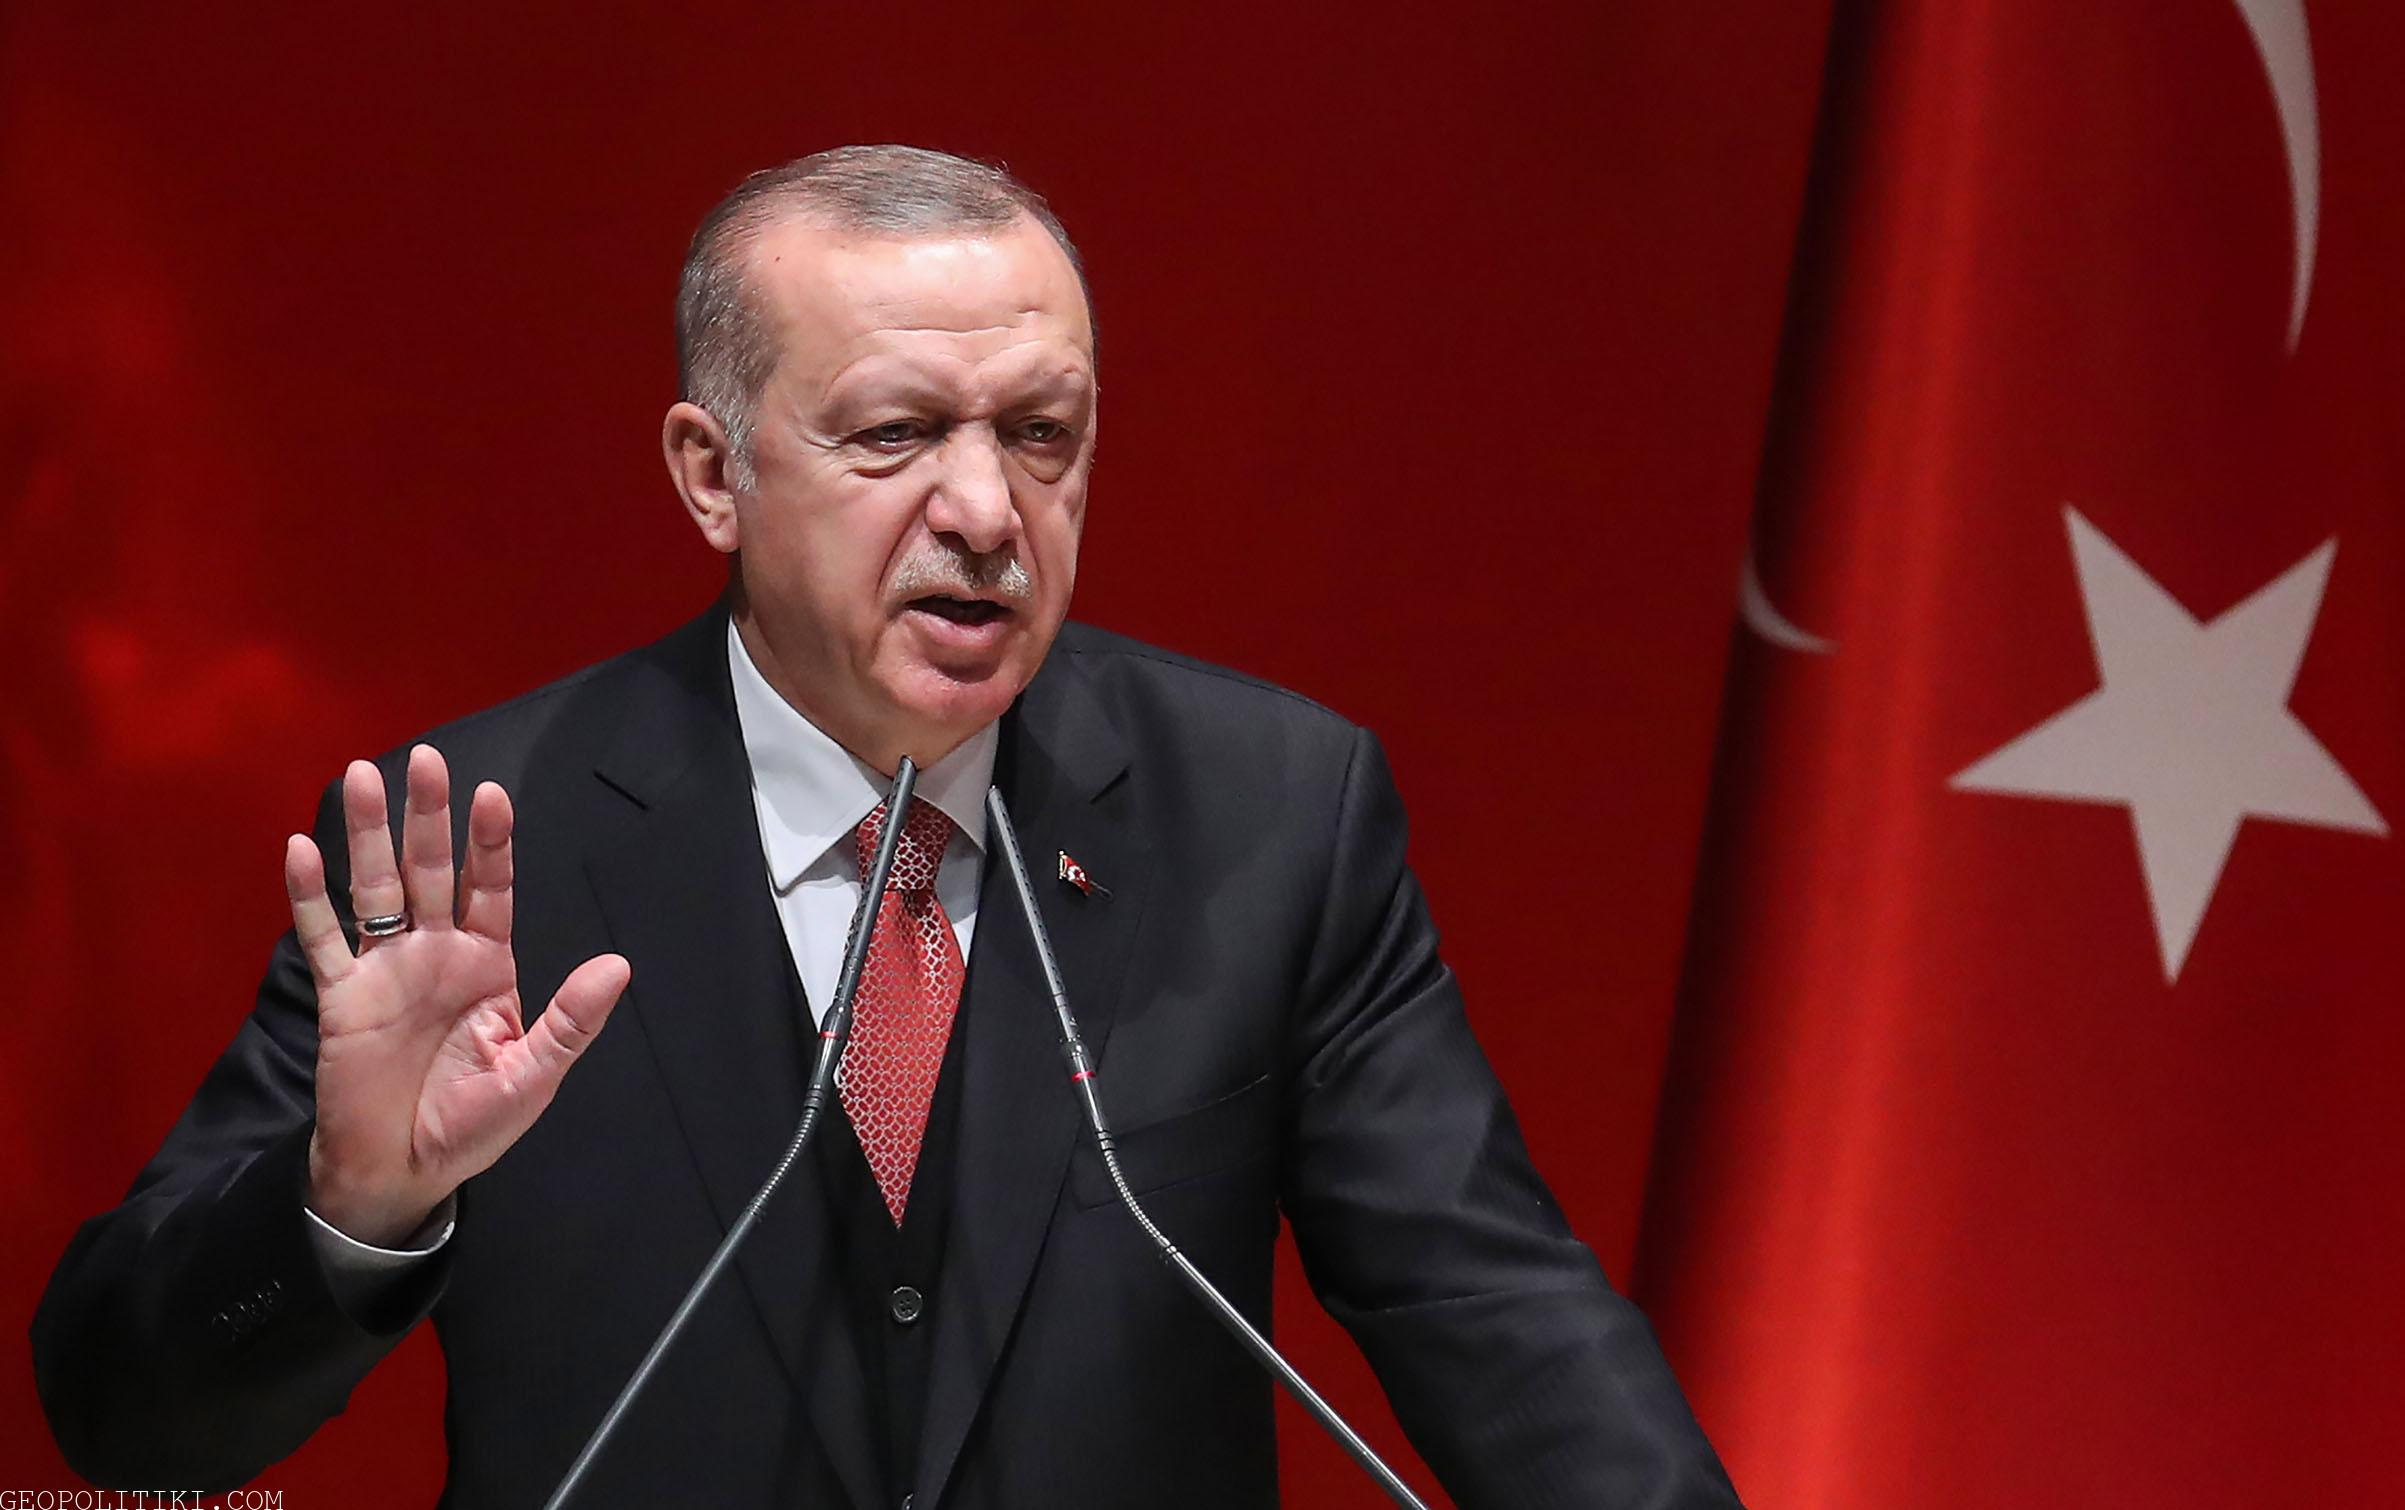 ERDOGAN AGAINST THE U.S. – Accusing the United States of supplying weapons to PKK